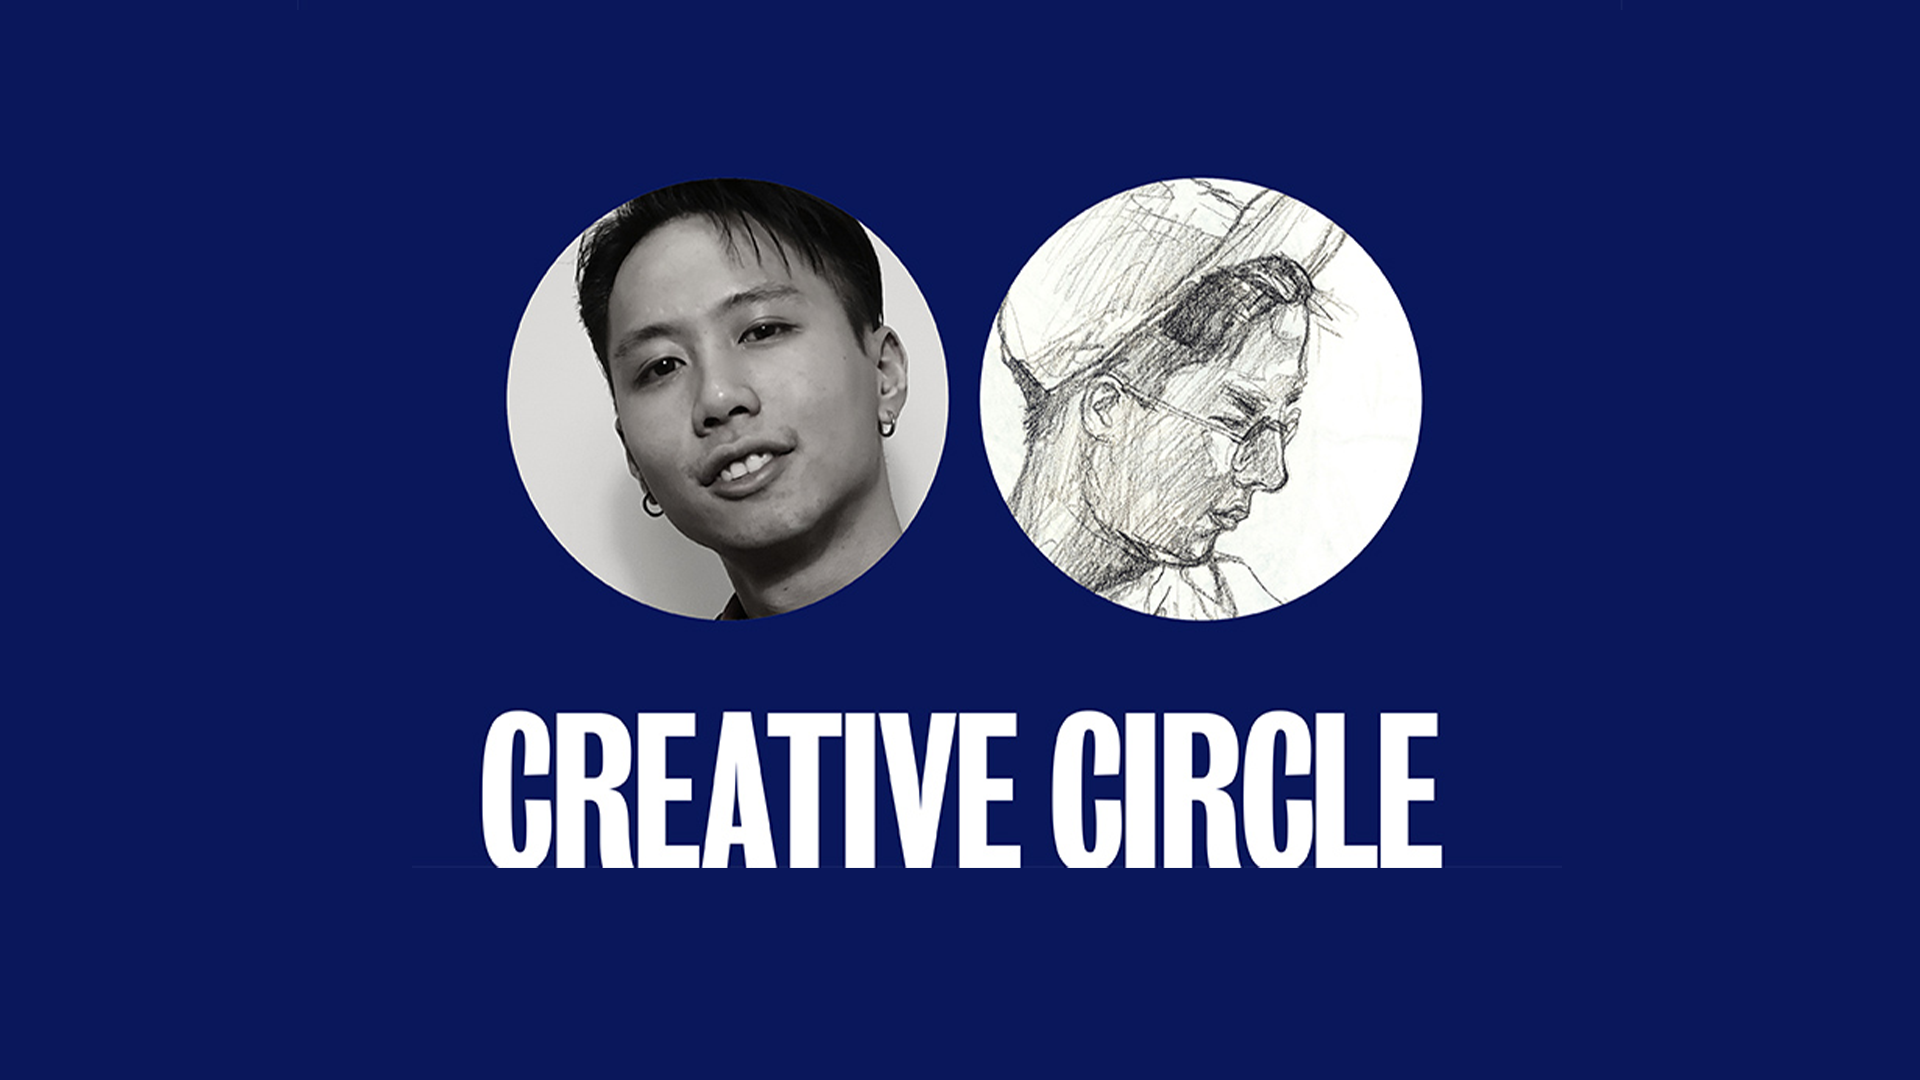 Campaign Asia's Creative Circle features GIGIL Founder Badong Abesamis' top picks of the week